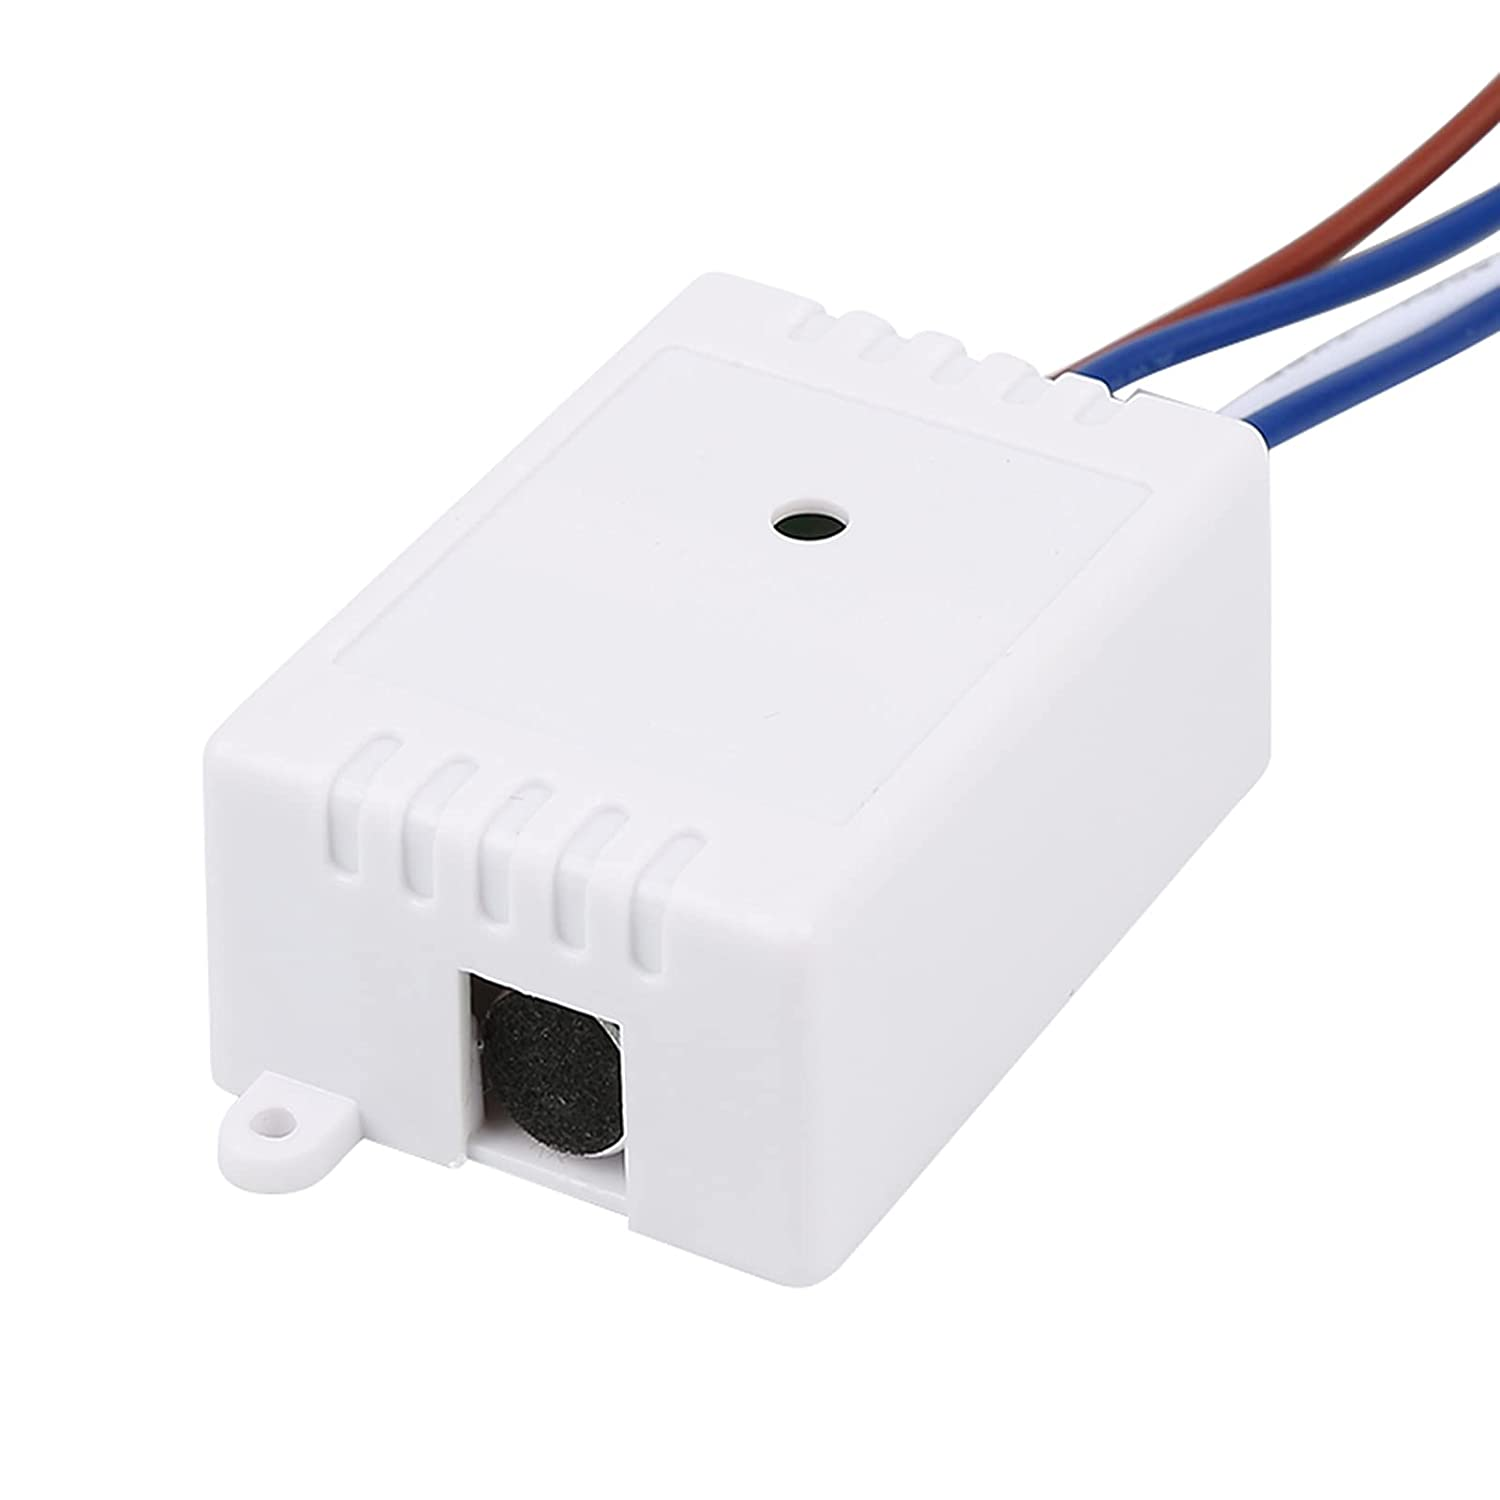 Auto Max 51% OFF On Colorado Springs Mall Off LED Sensor Module Switch Intelligent Light with Voi